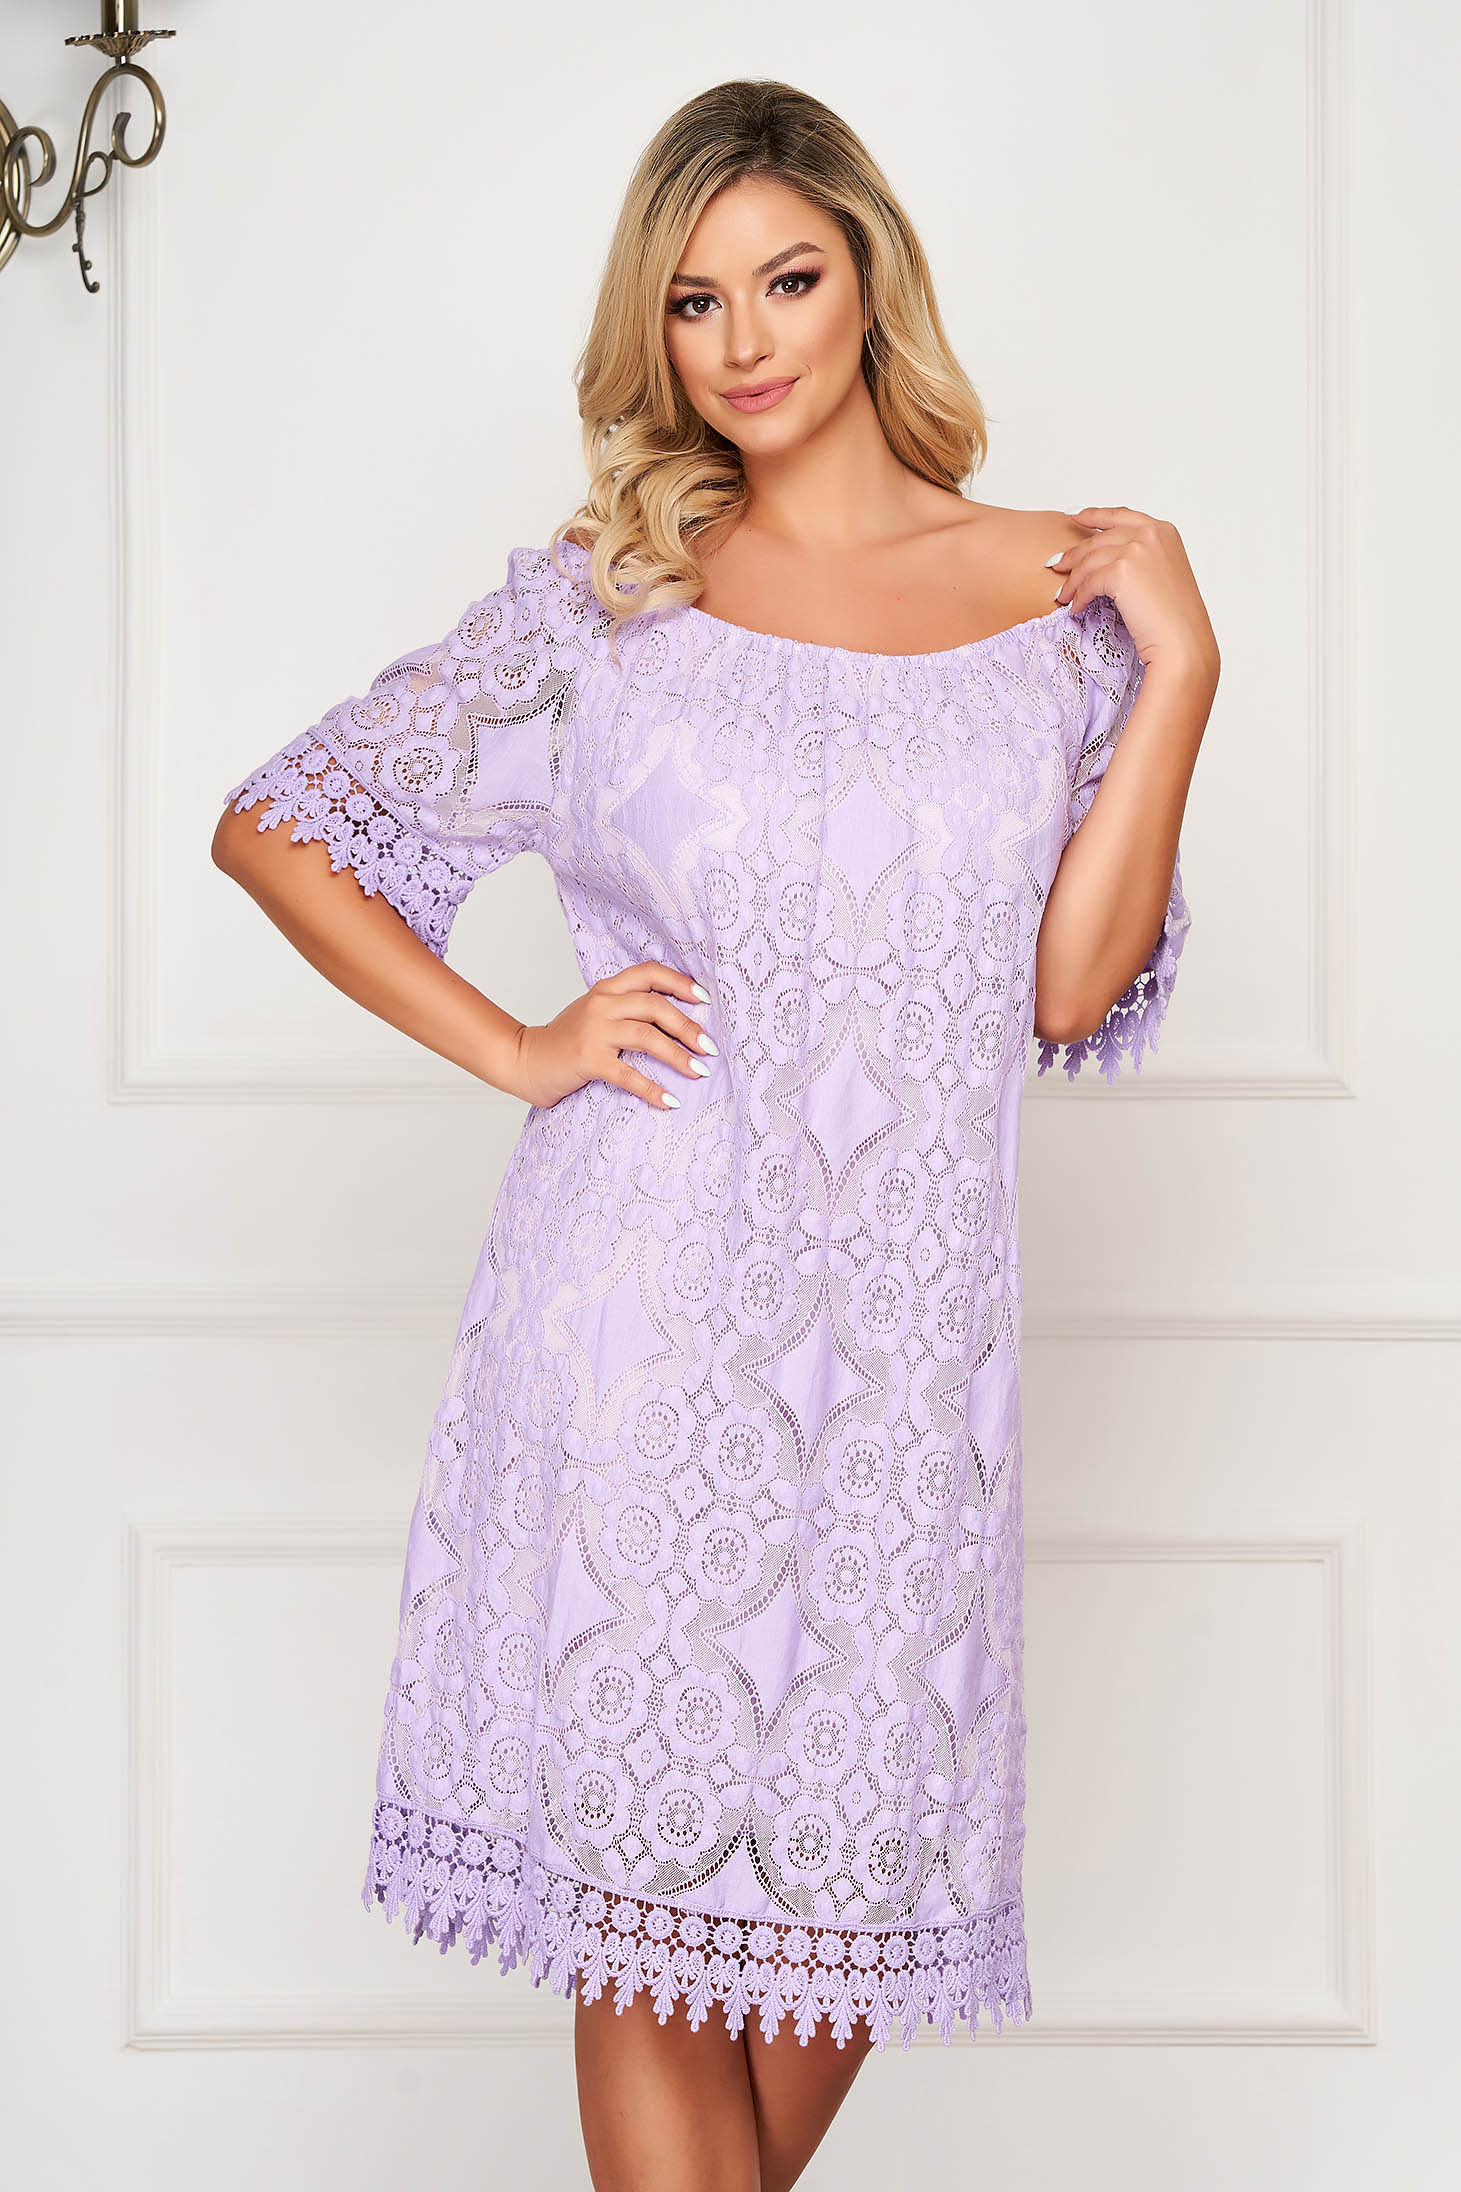 Purple dress short cut daily flared laced off-shoulder